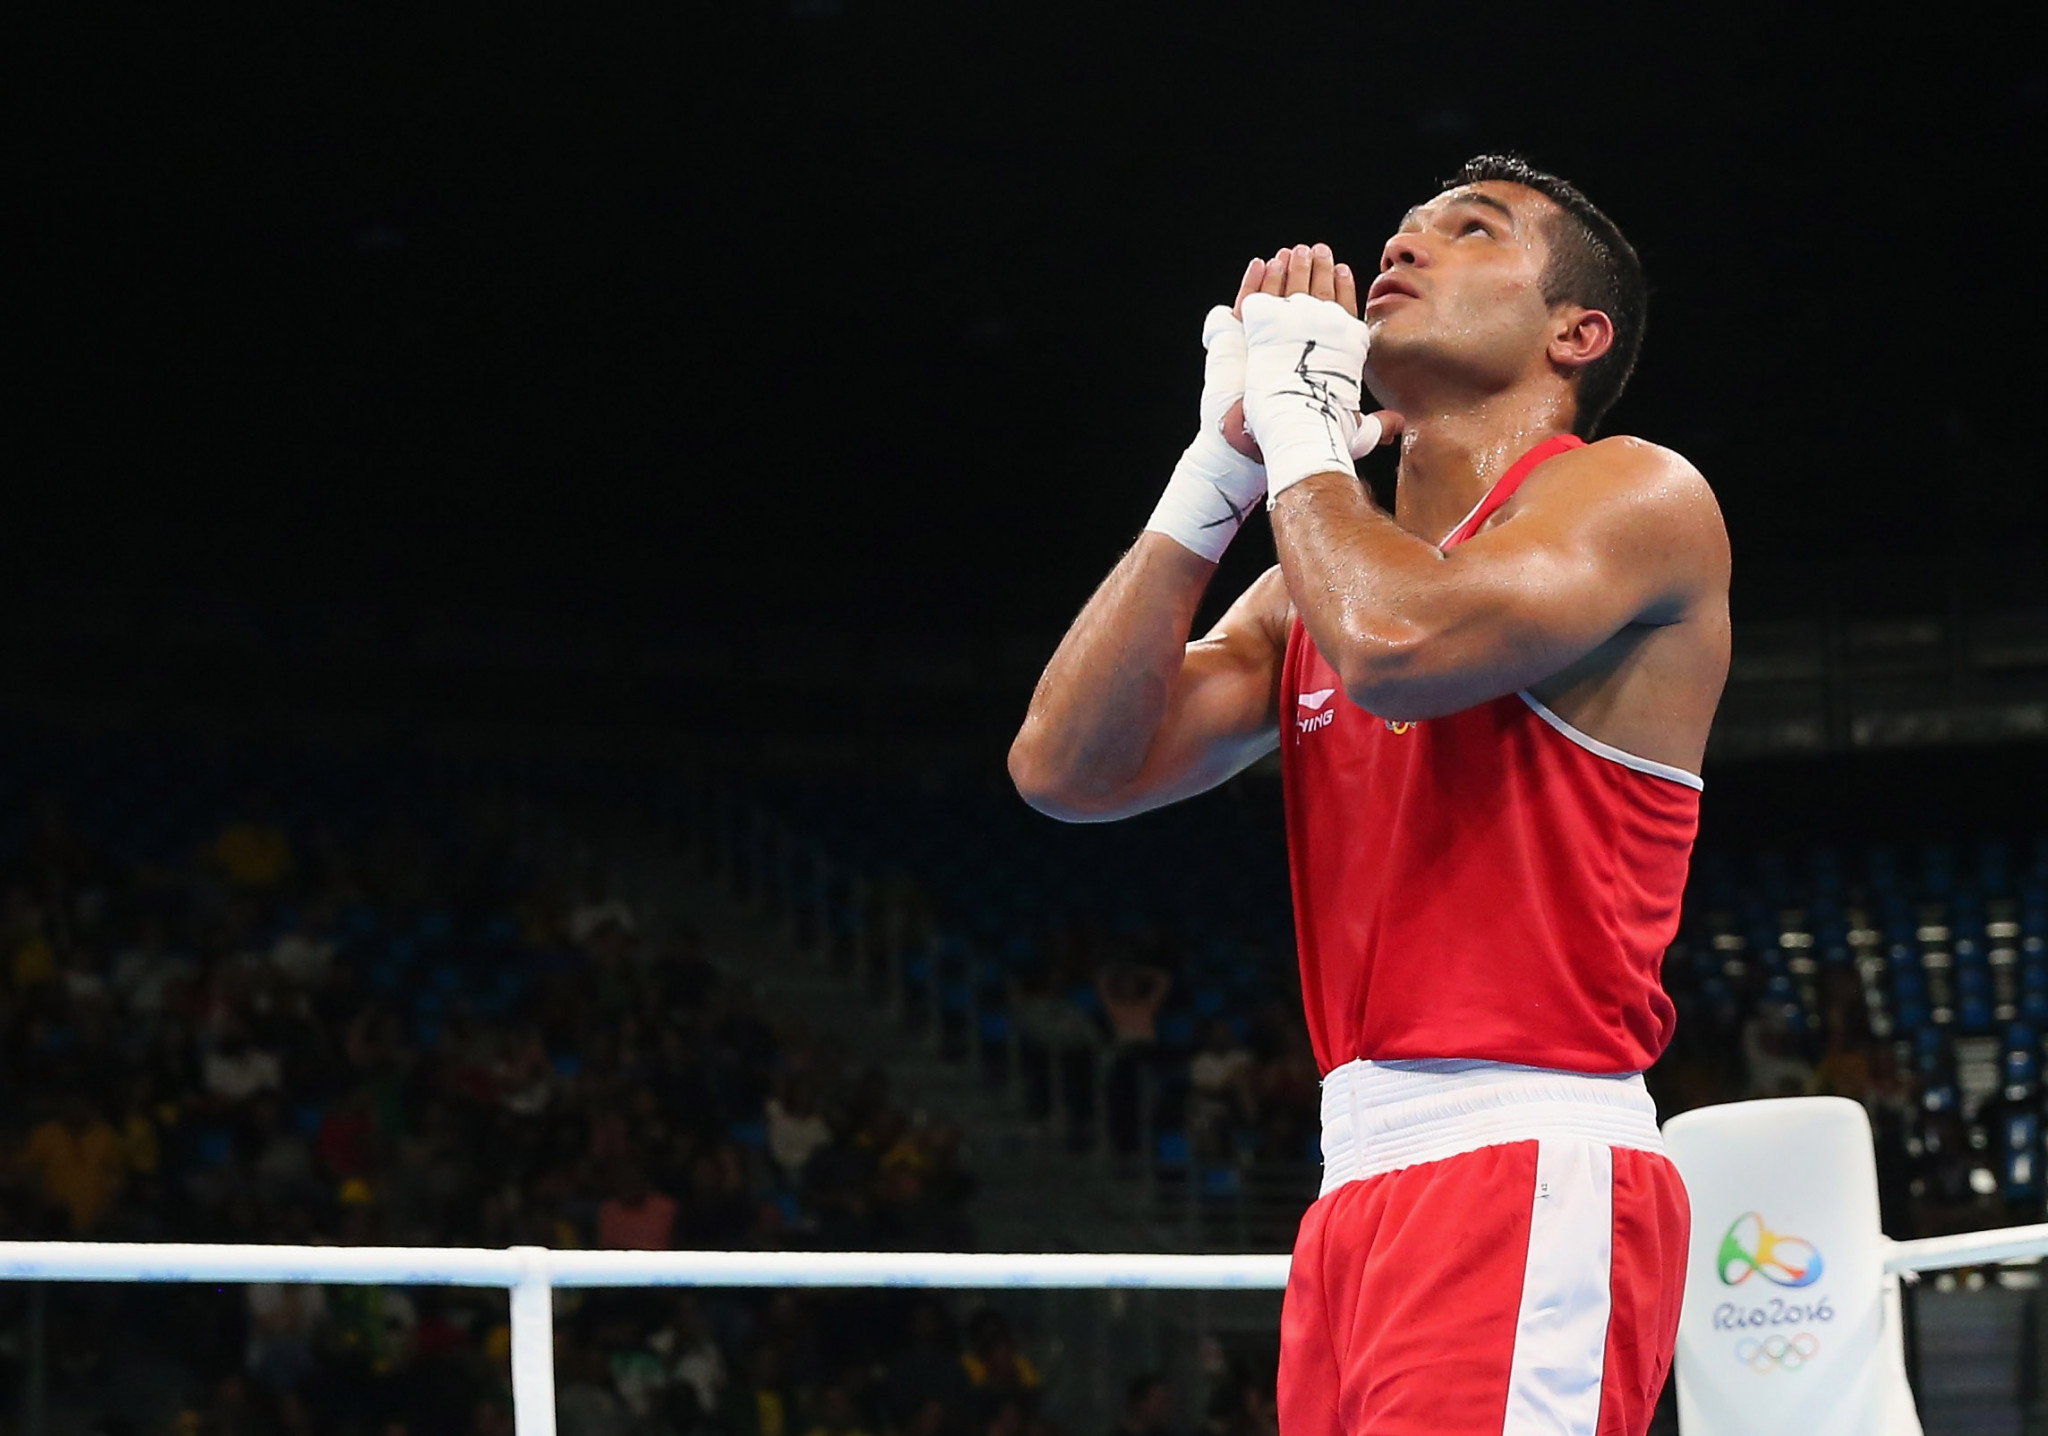 Indian boxing star Krishan's coach stuck in United States due to visa issues